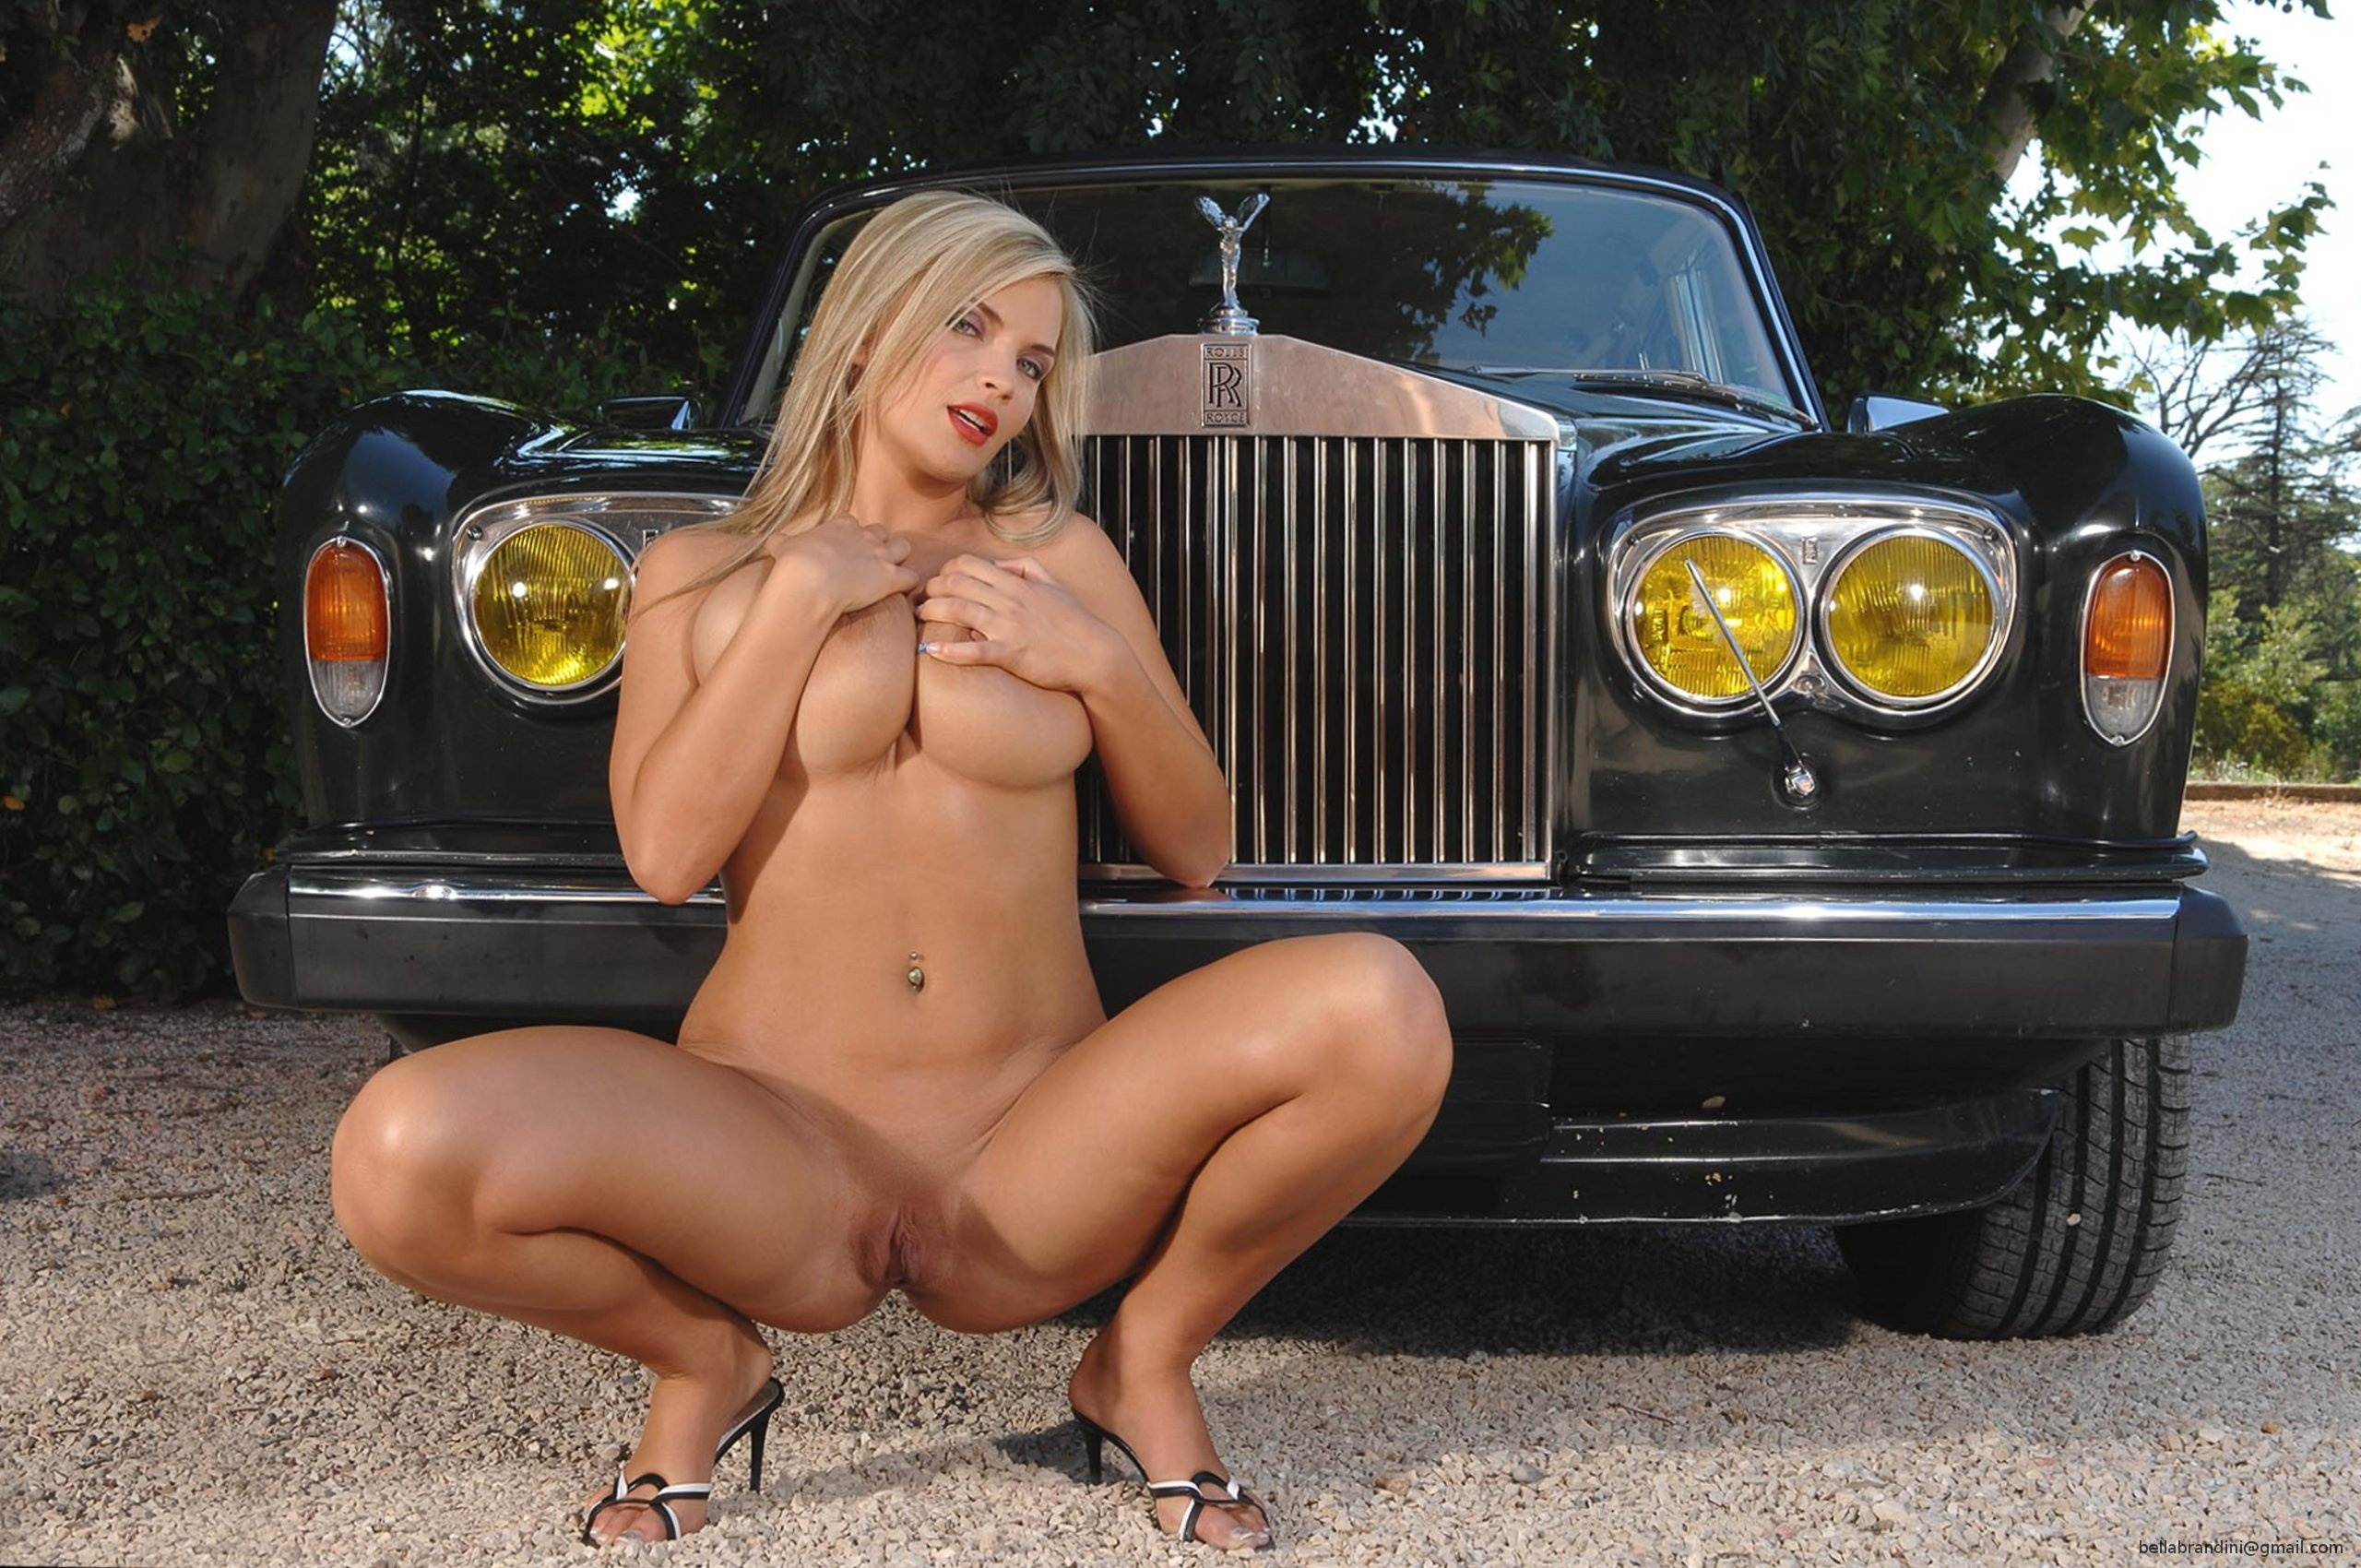 tits and cars